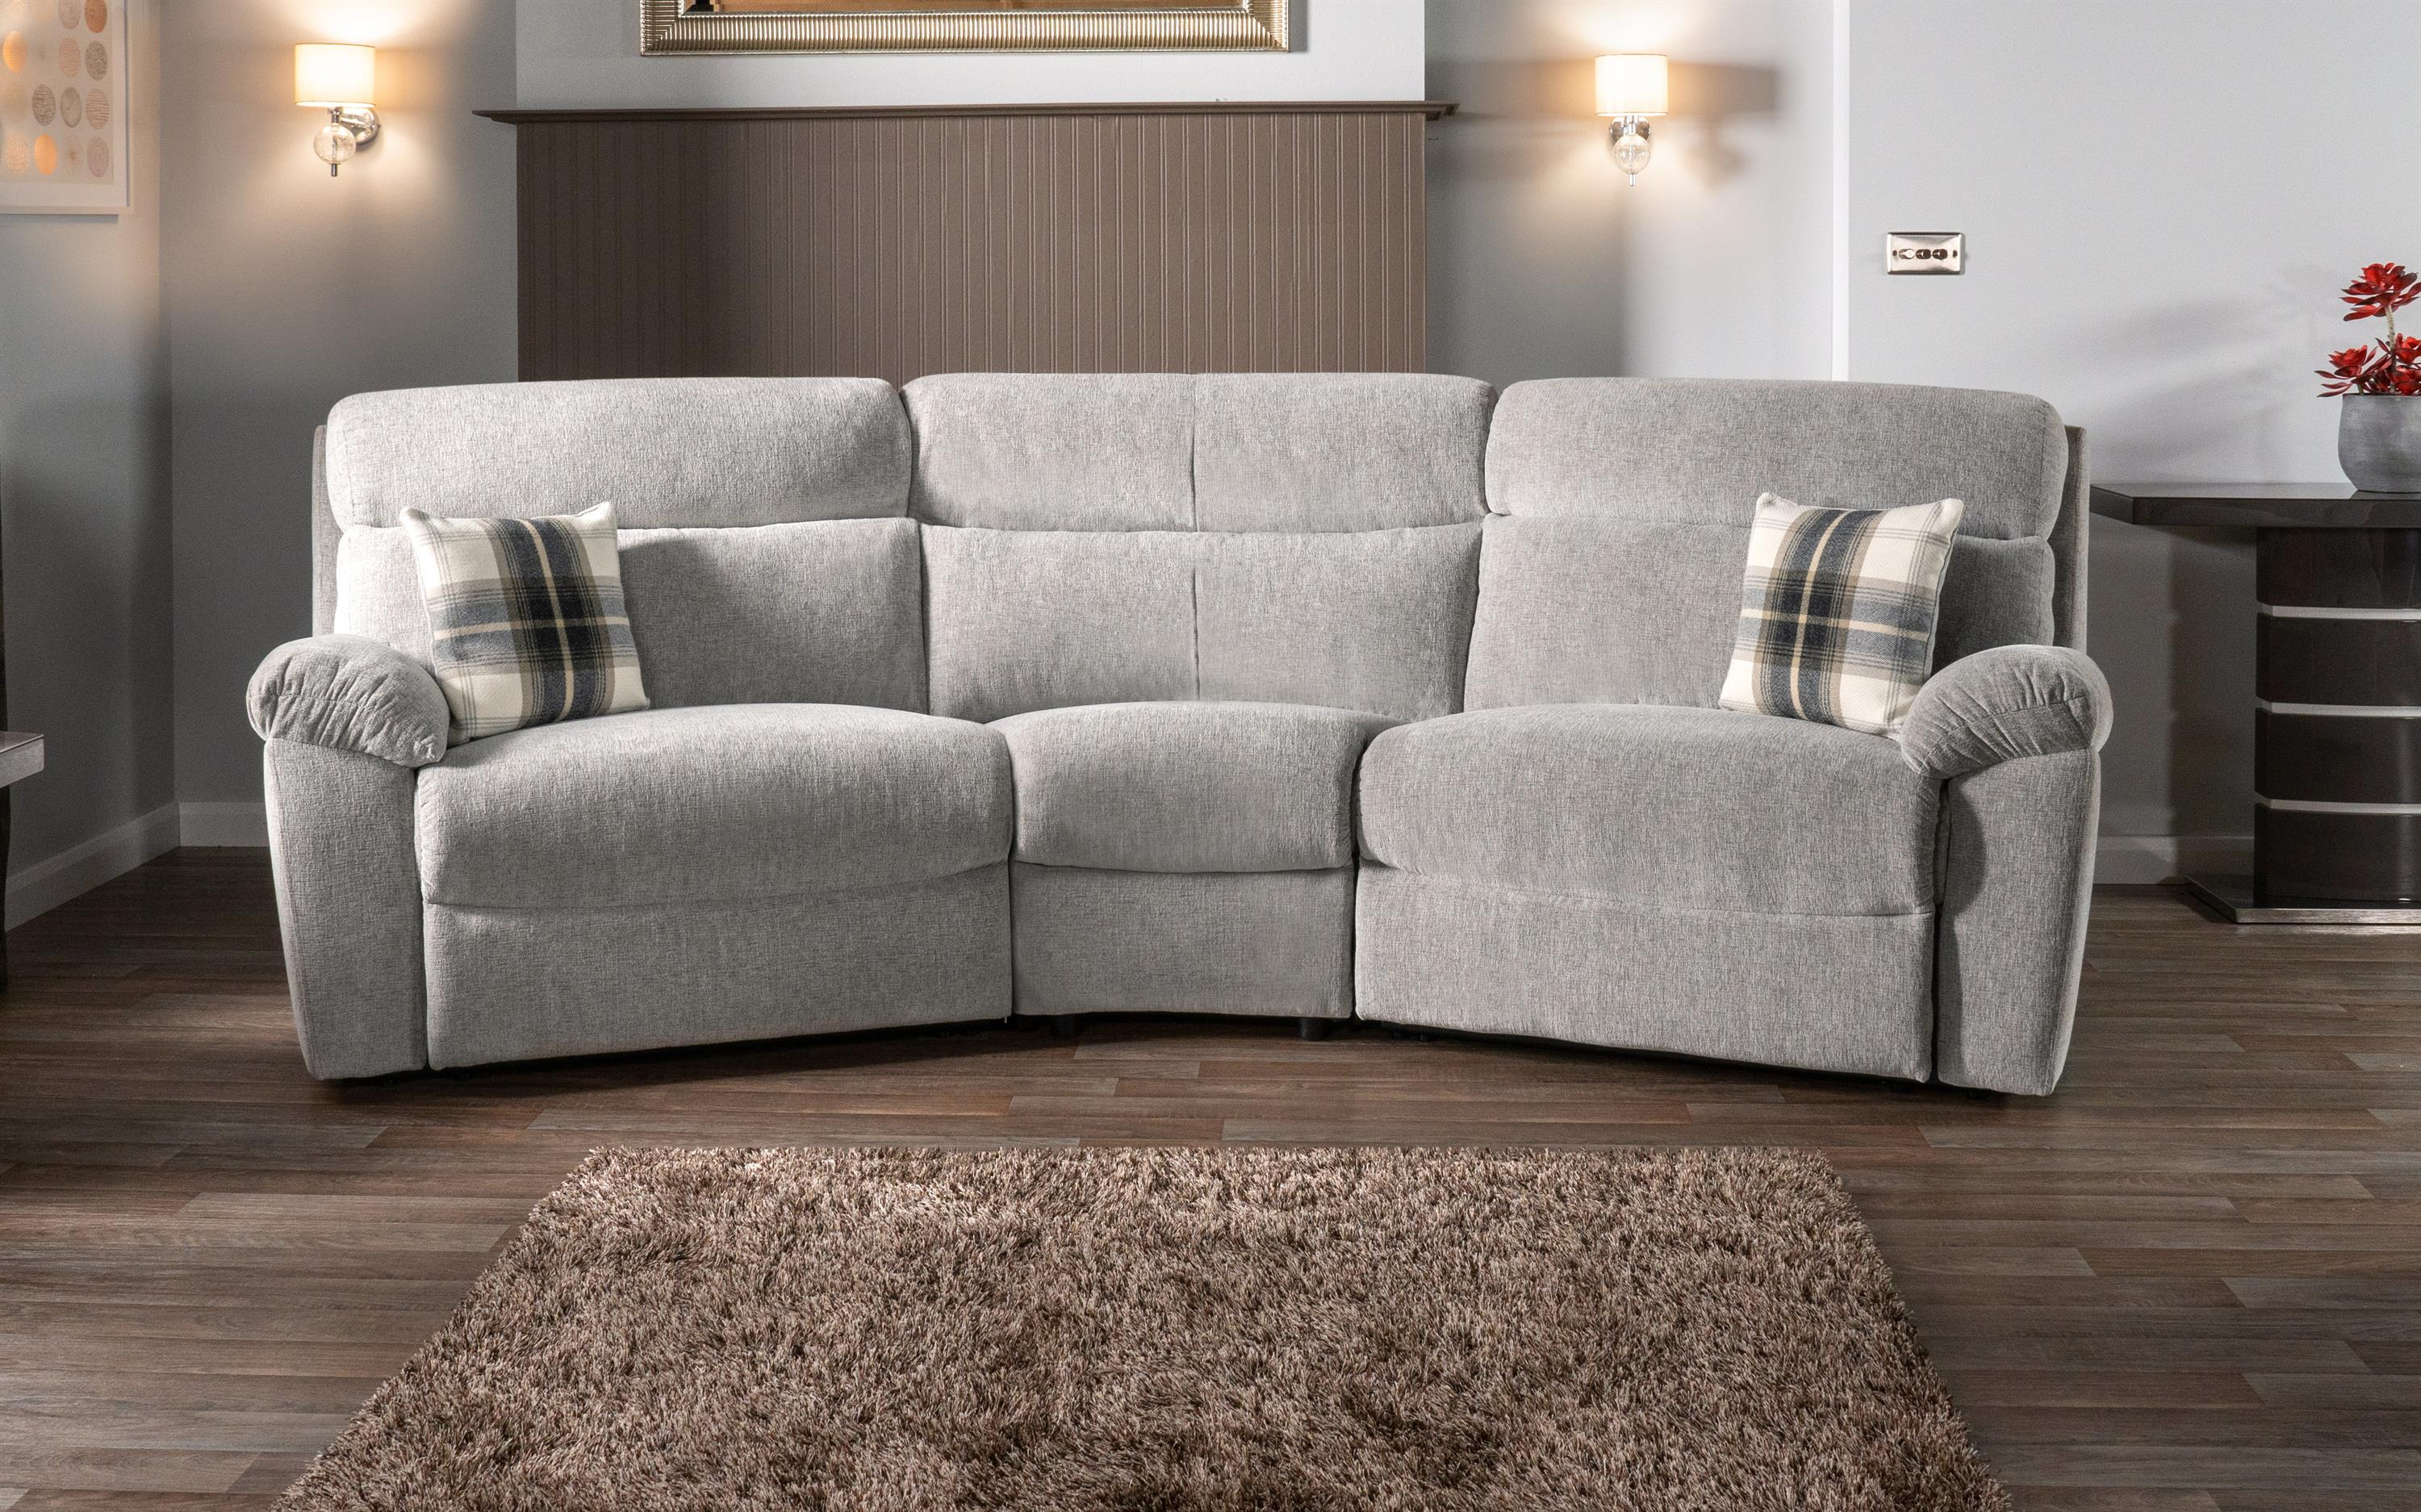 Cloud 4 Seater Curved Static Sofa